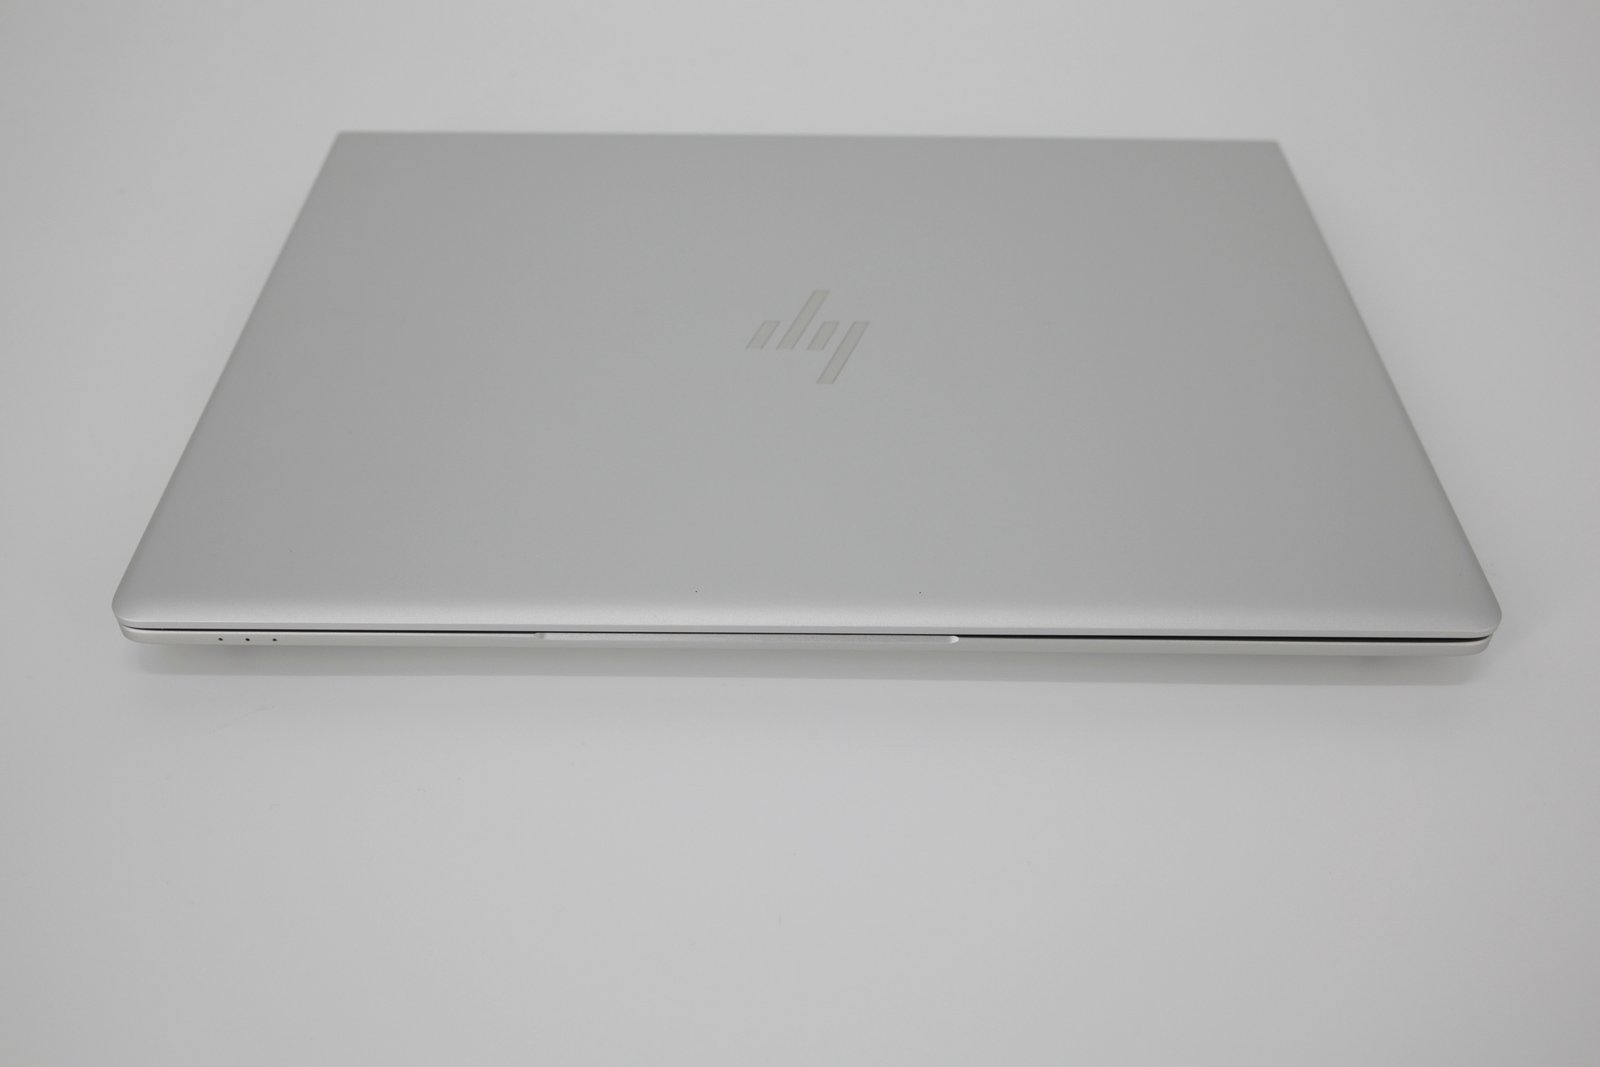 HP EliteBook 735 G5 Laptop: Ryzen 7, 8GB RAM, 256GB, Vega 10 Graphics, Warranty